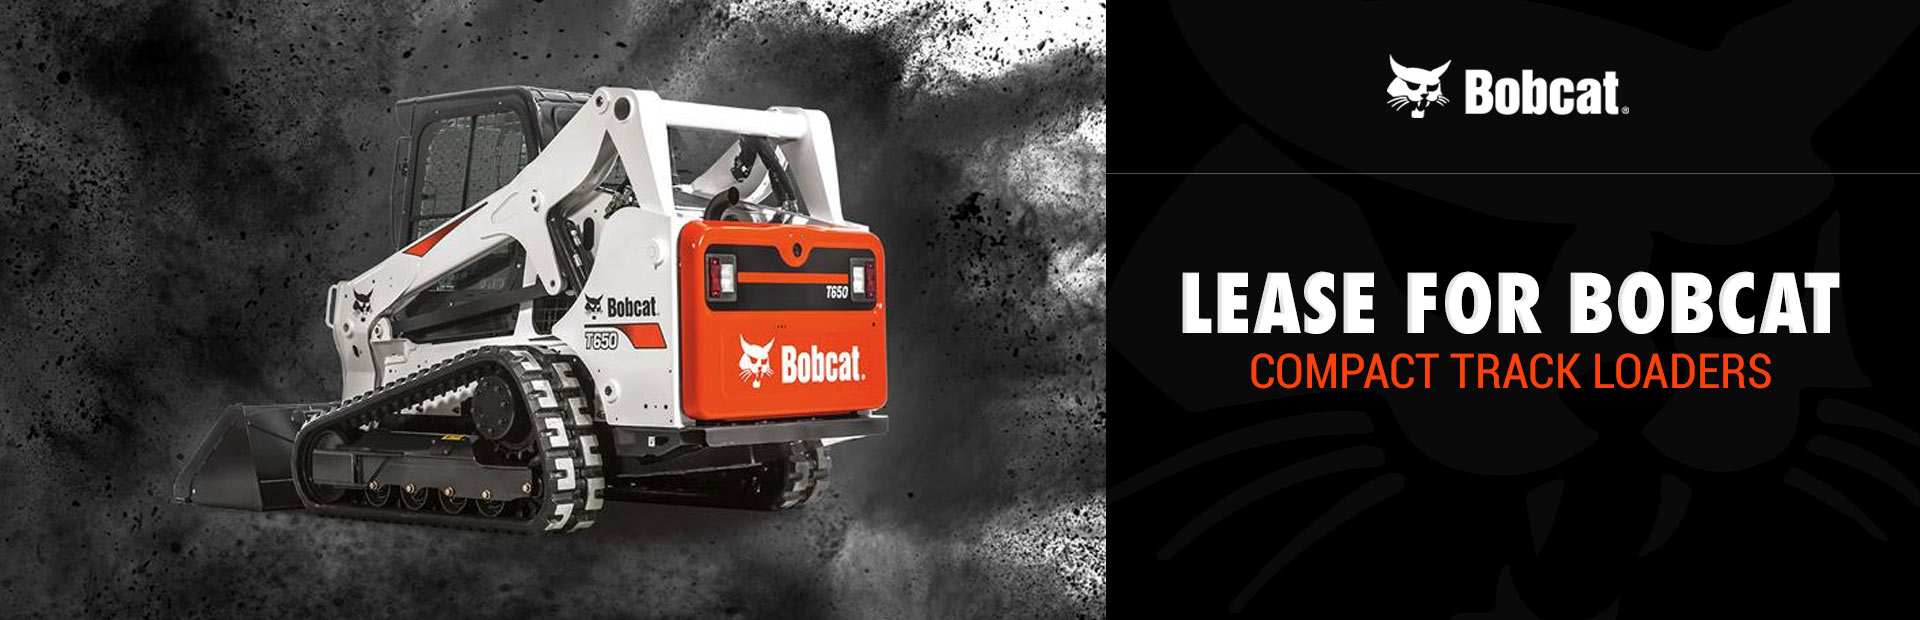 Bobcat: Lease For Bobcat Compact Track Loaders